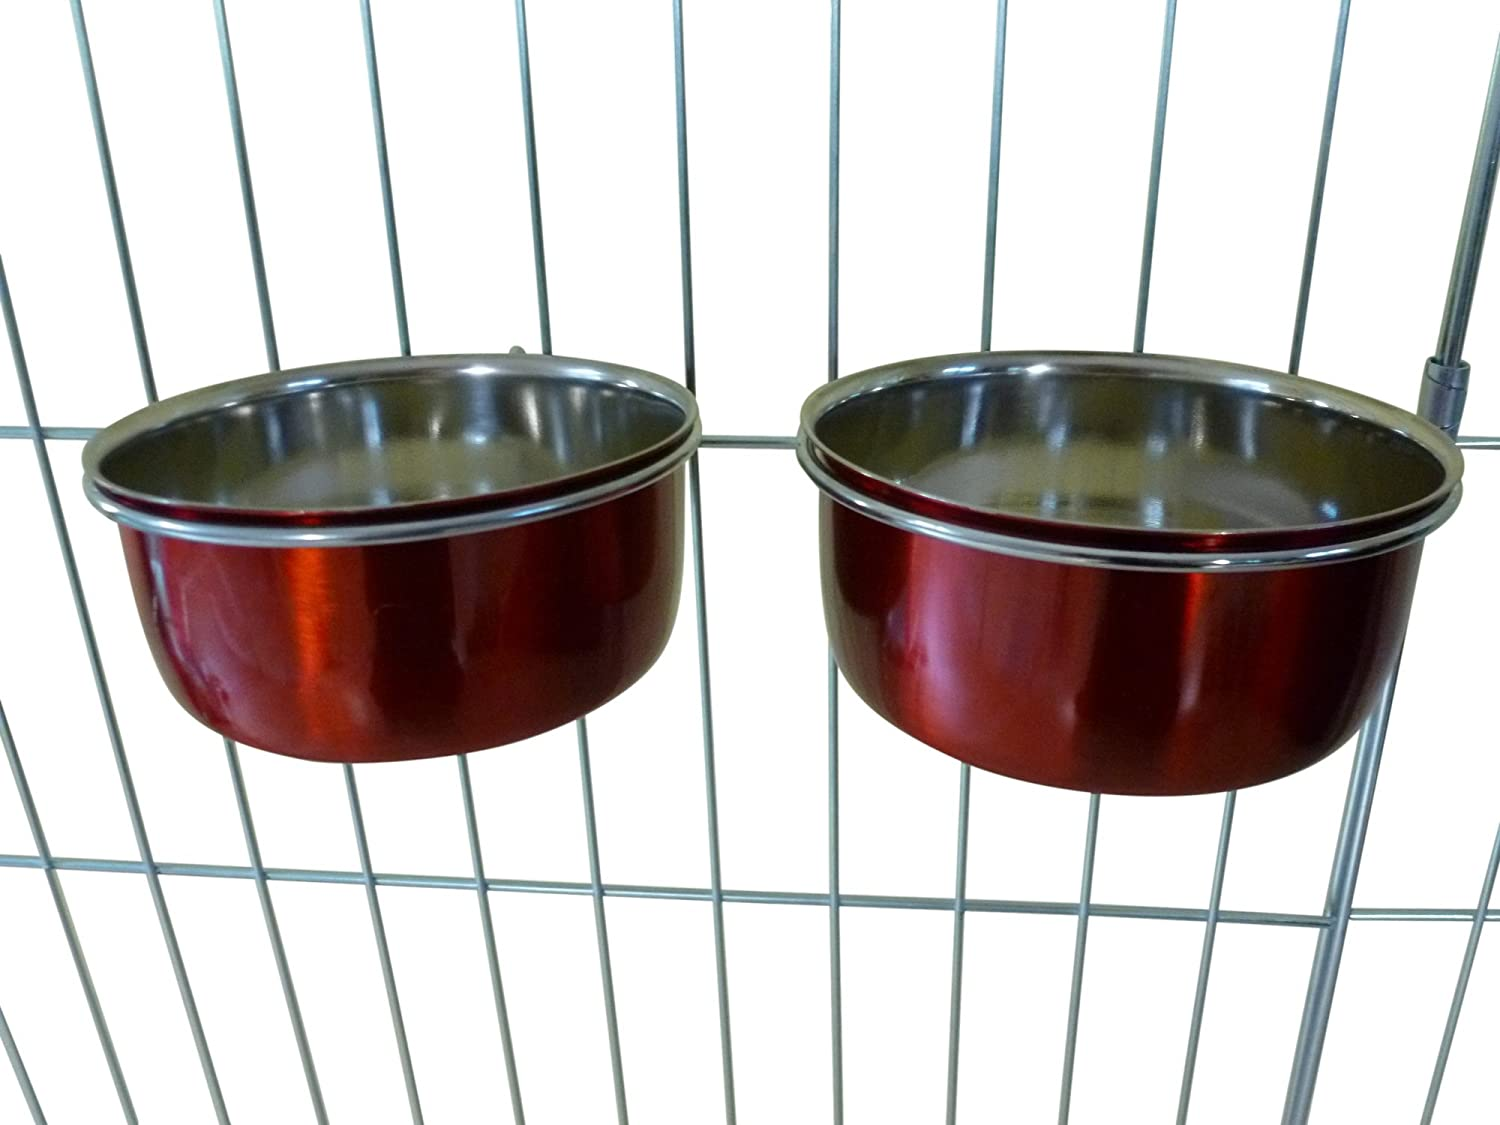 Ellie-Bo Pair of Dog Bowls for Crates Cages or Pens, Small, 0.6 Litre, Red